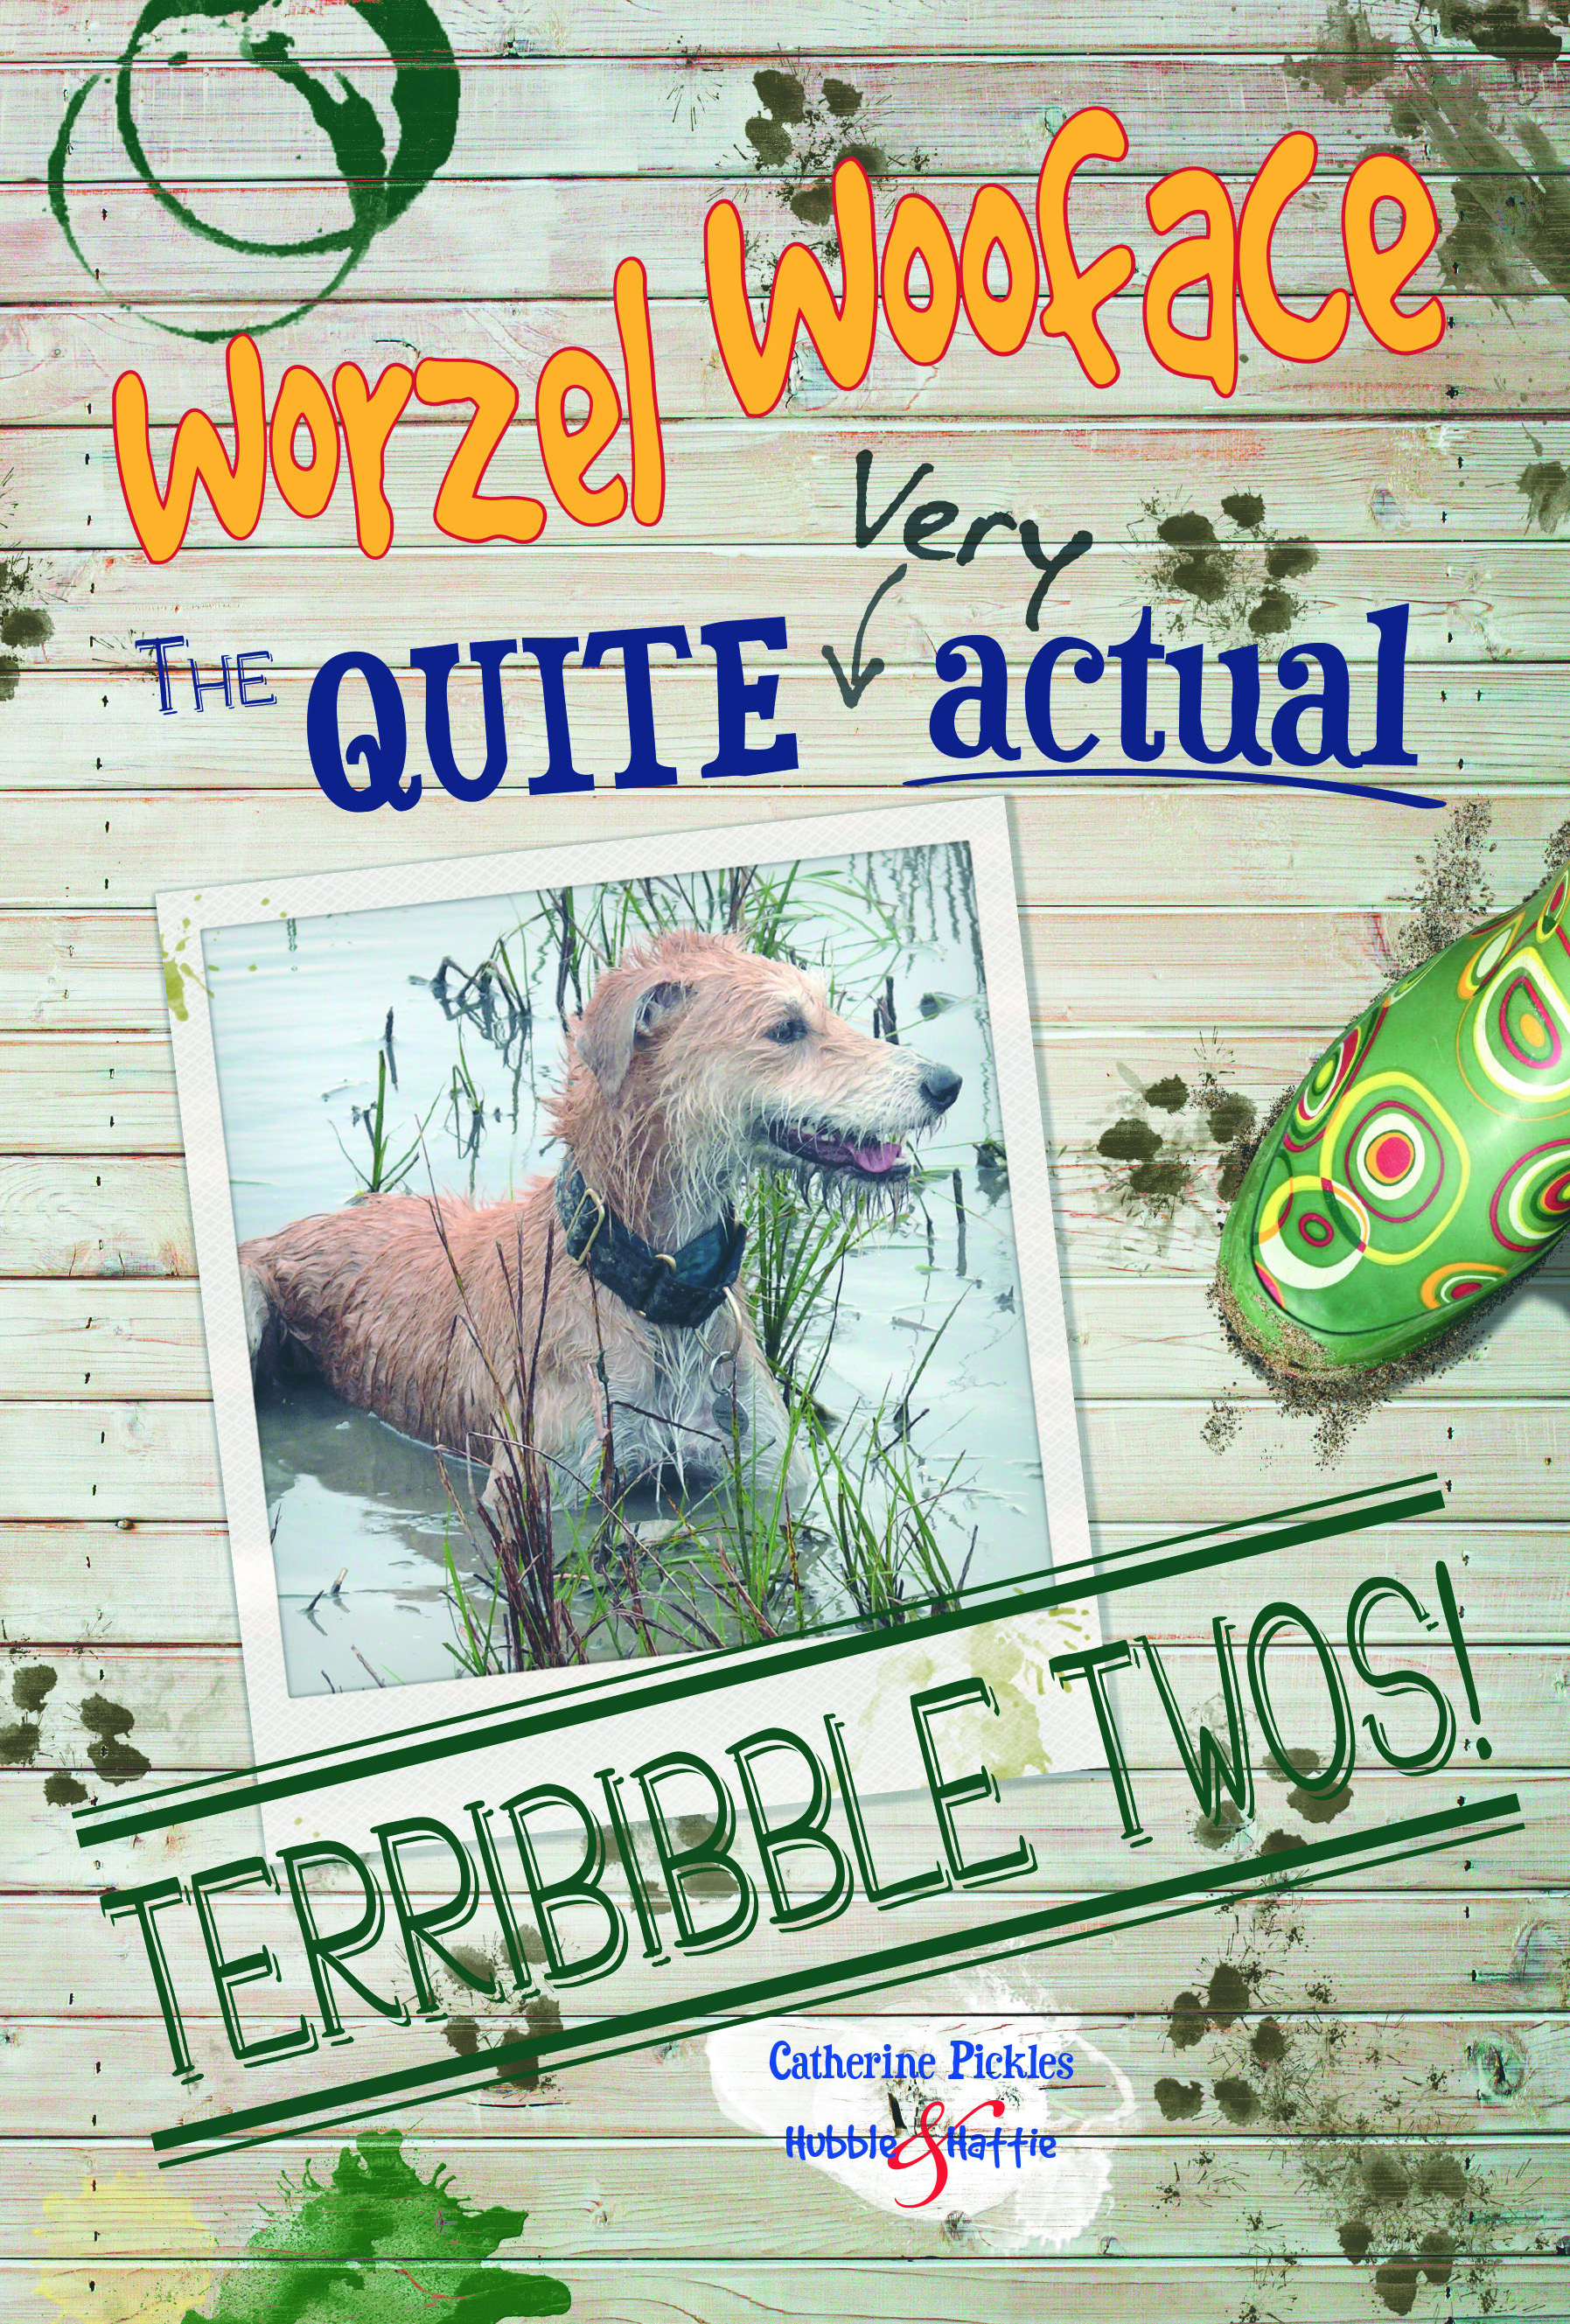 Worzel WoofaceThe quite very actual Terribibble Twos